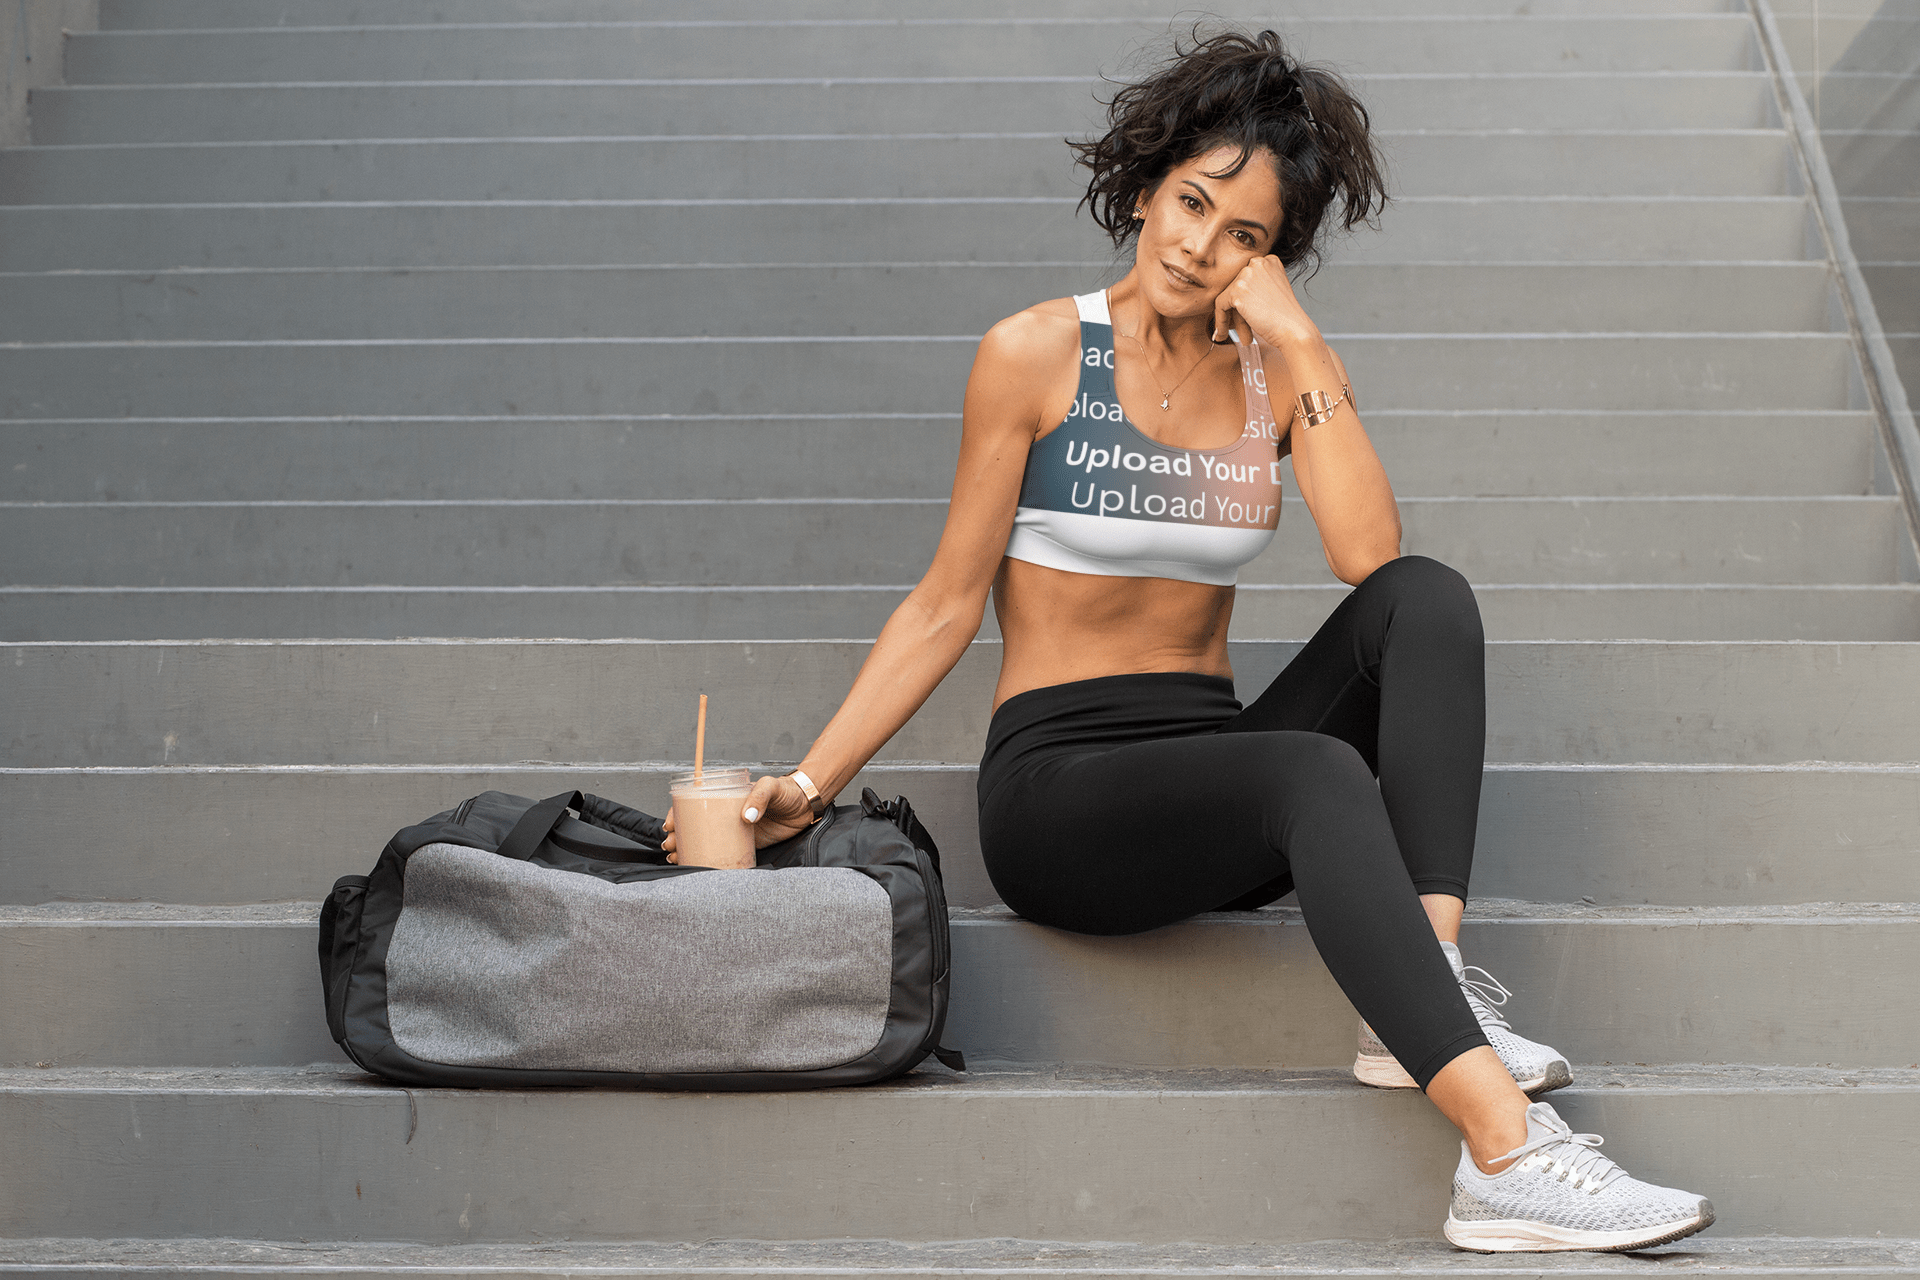 Sports bra Mockup with a fit woman near the staircase